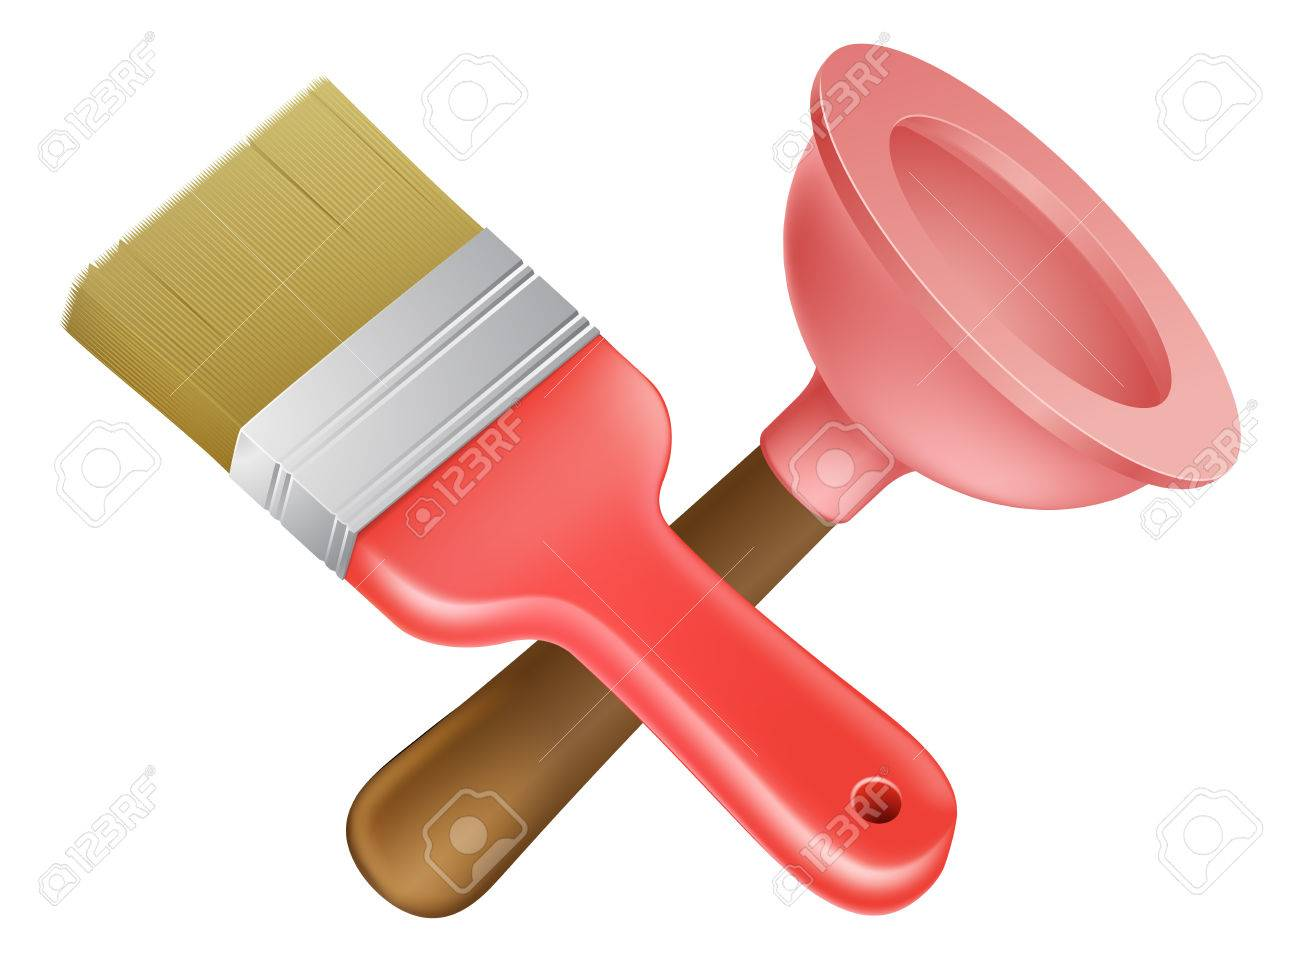 1300x962 Crossed Plunger And Paintbrush Tools Icon Of Cartoon Tools Crossed